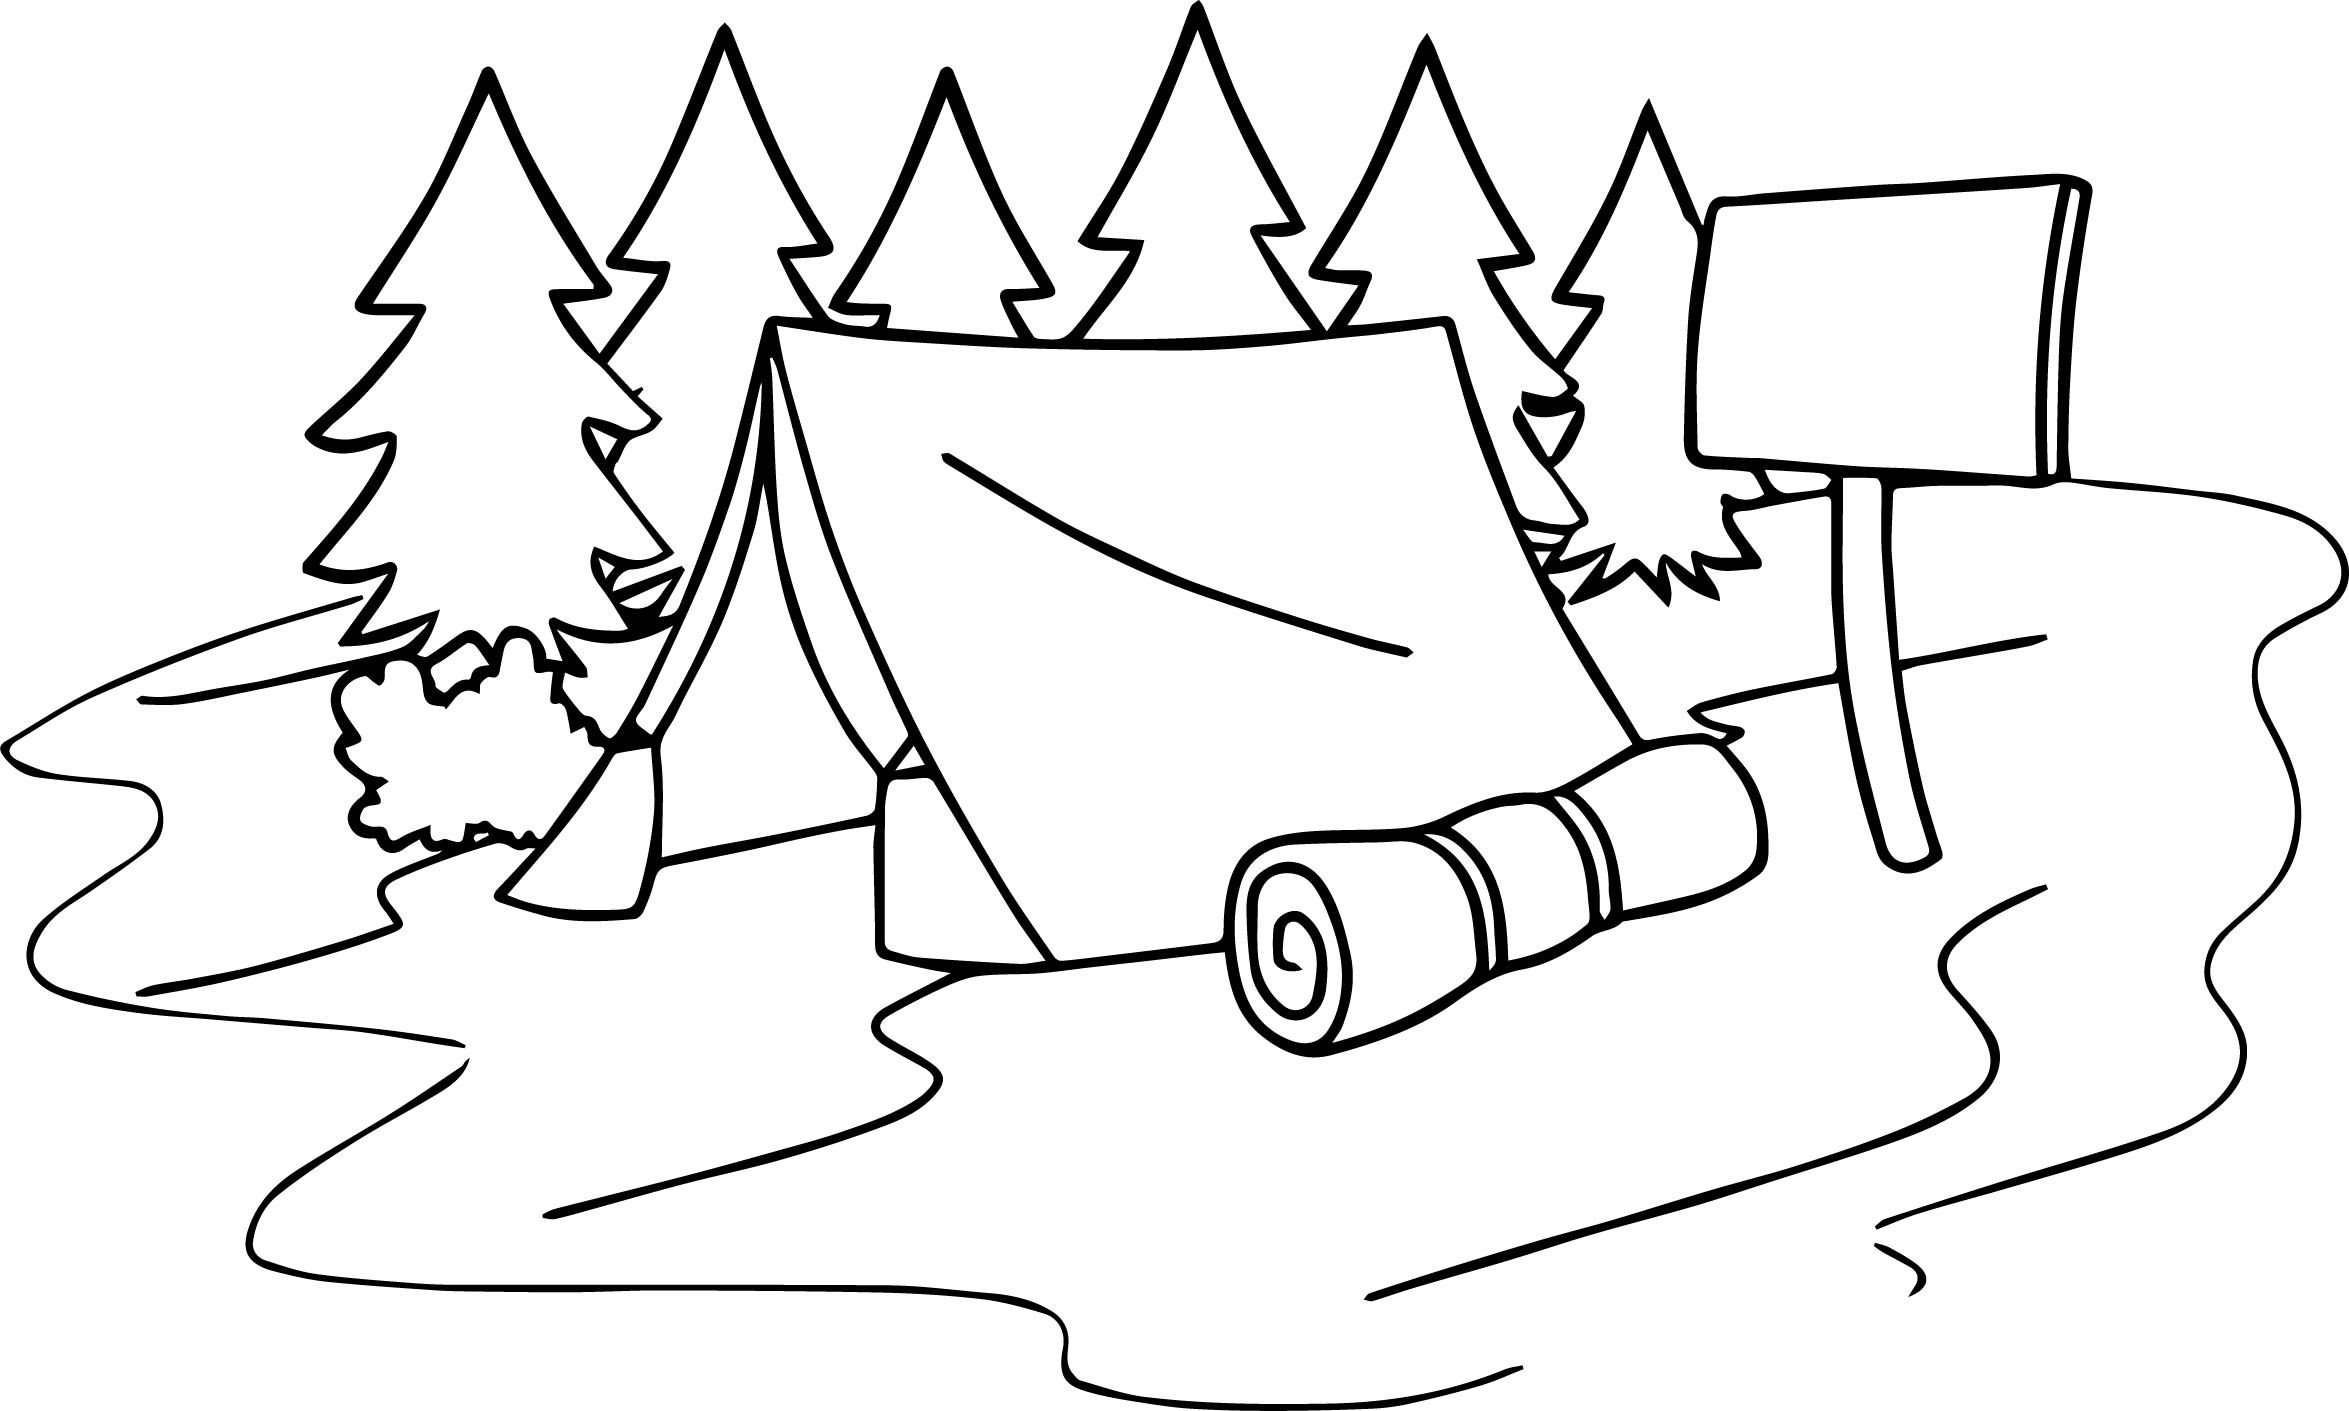 Awesome Summer Camp Tent Sleeping Bag Camping Coloring Page